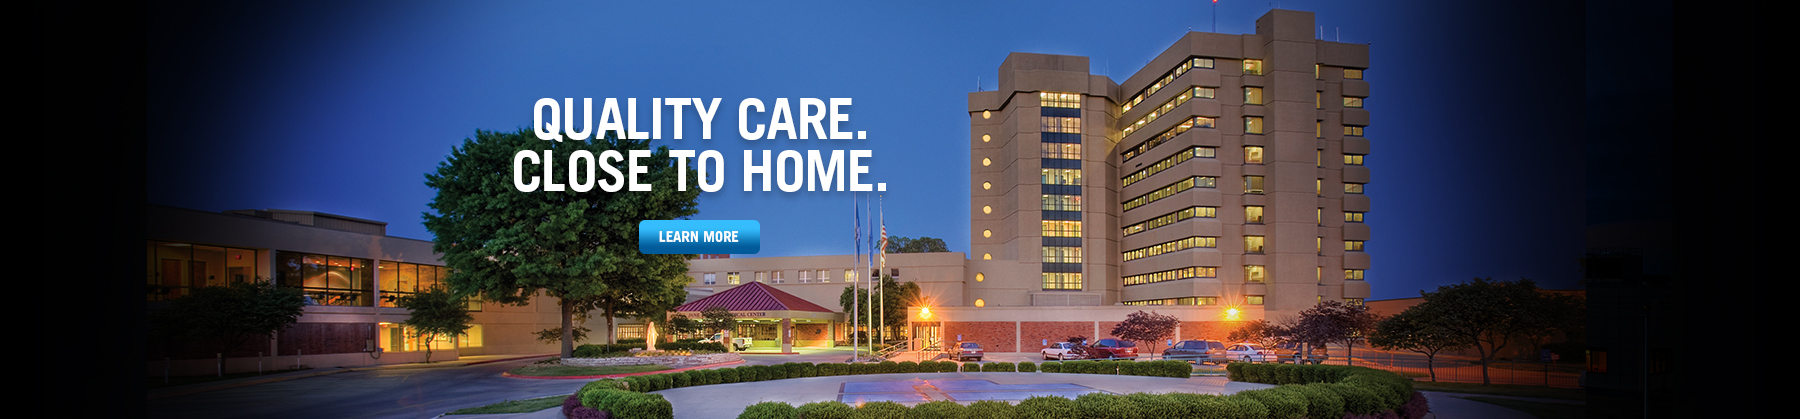 Quality Care. Close to Home.